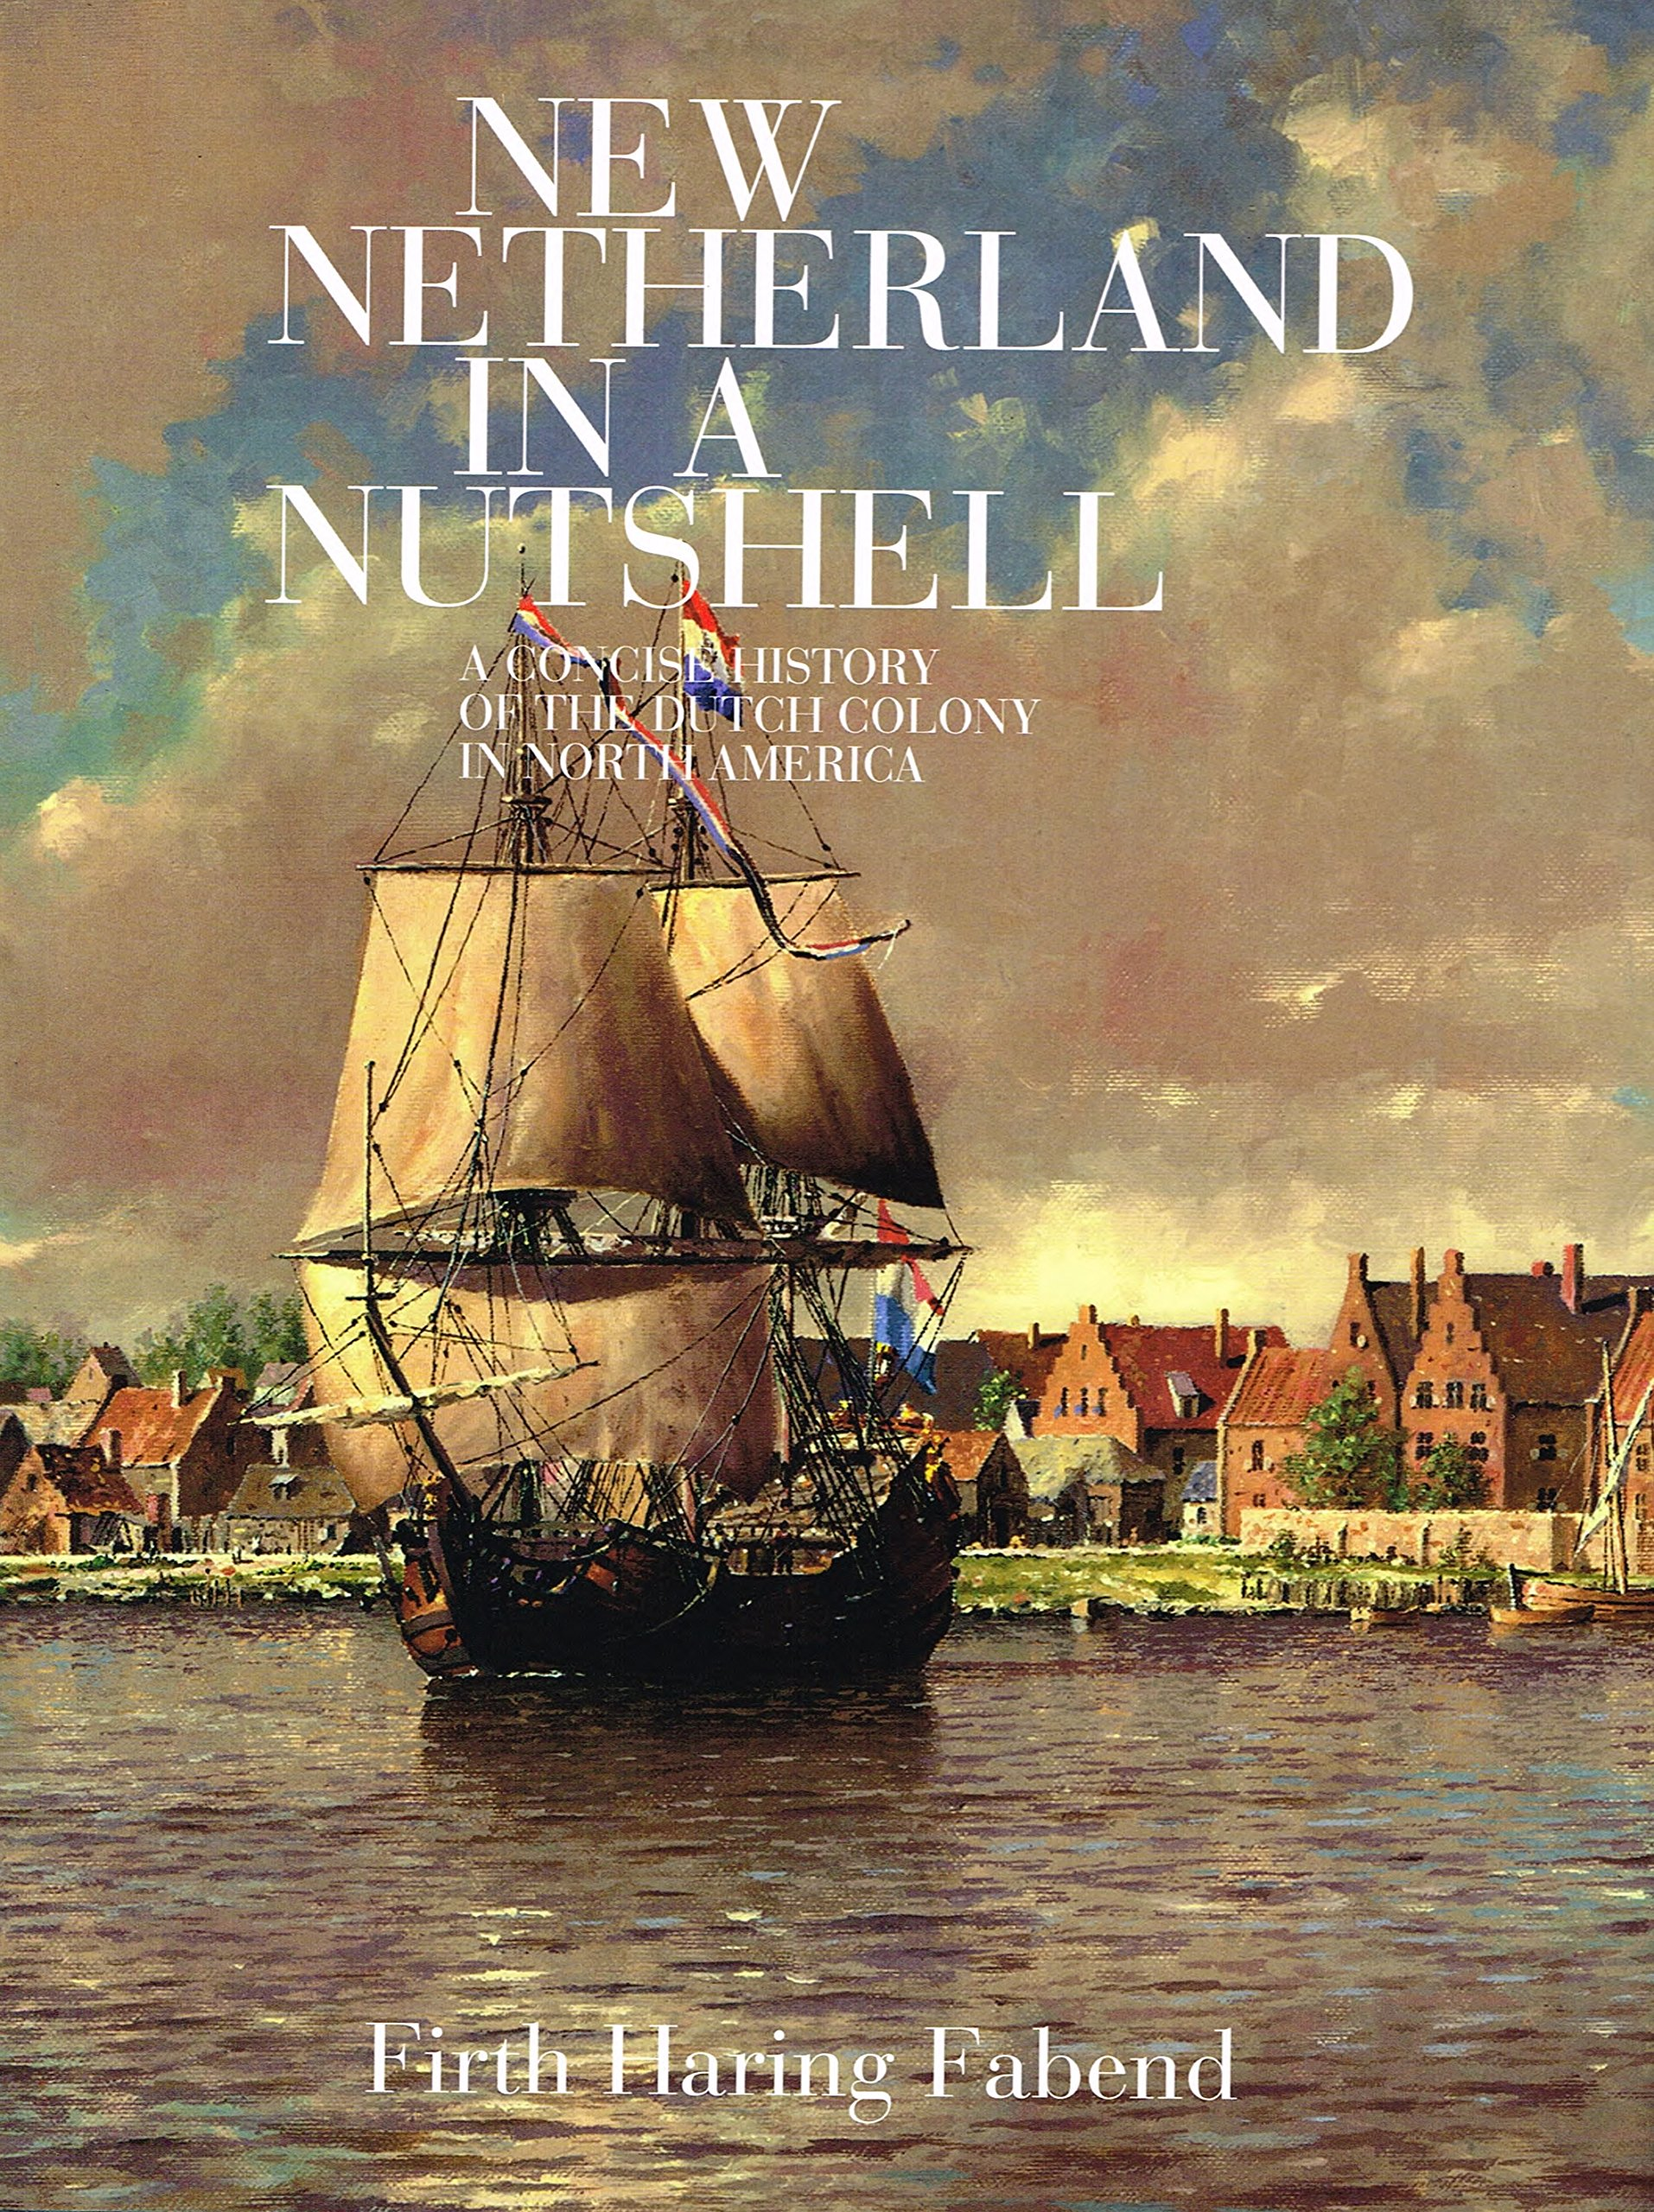 new netherland in a nutshell firth haring fabend historical